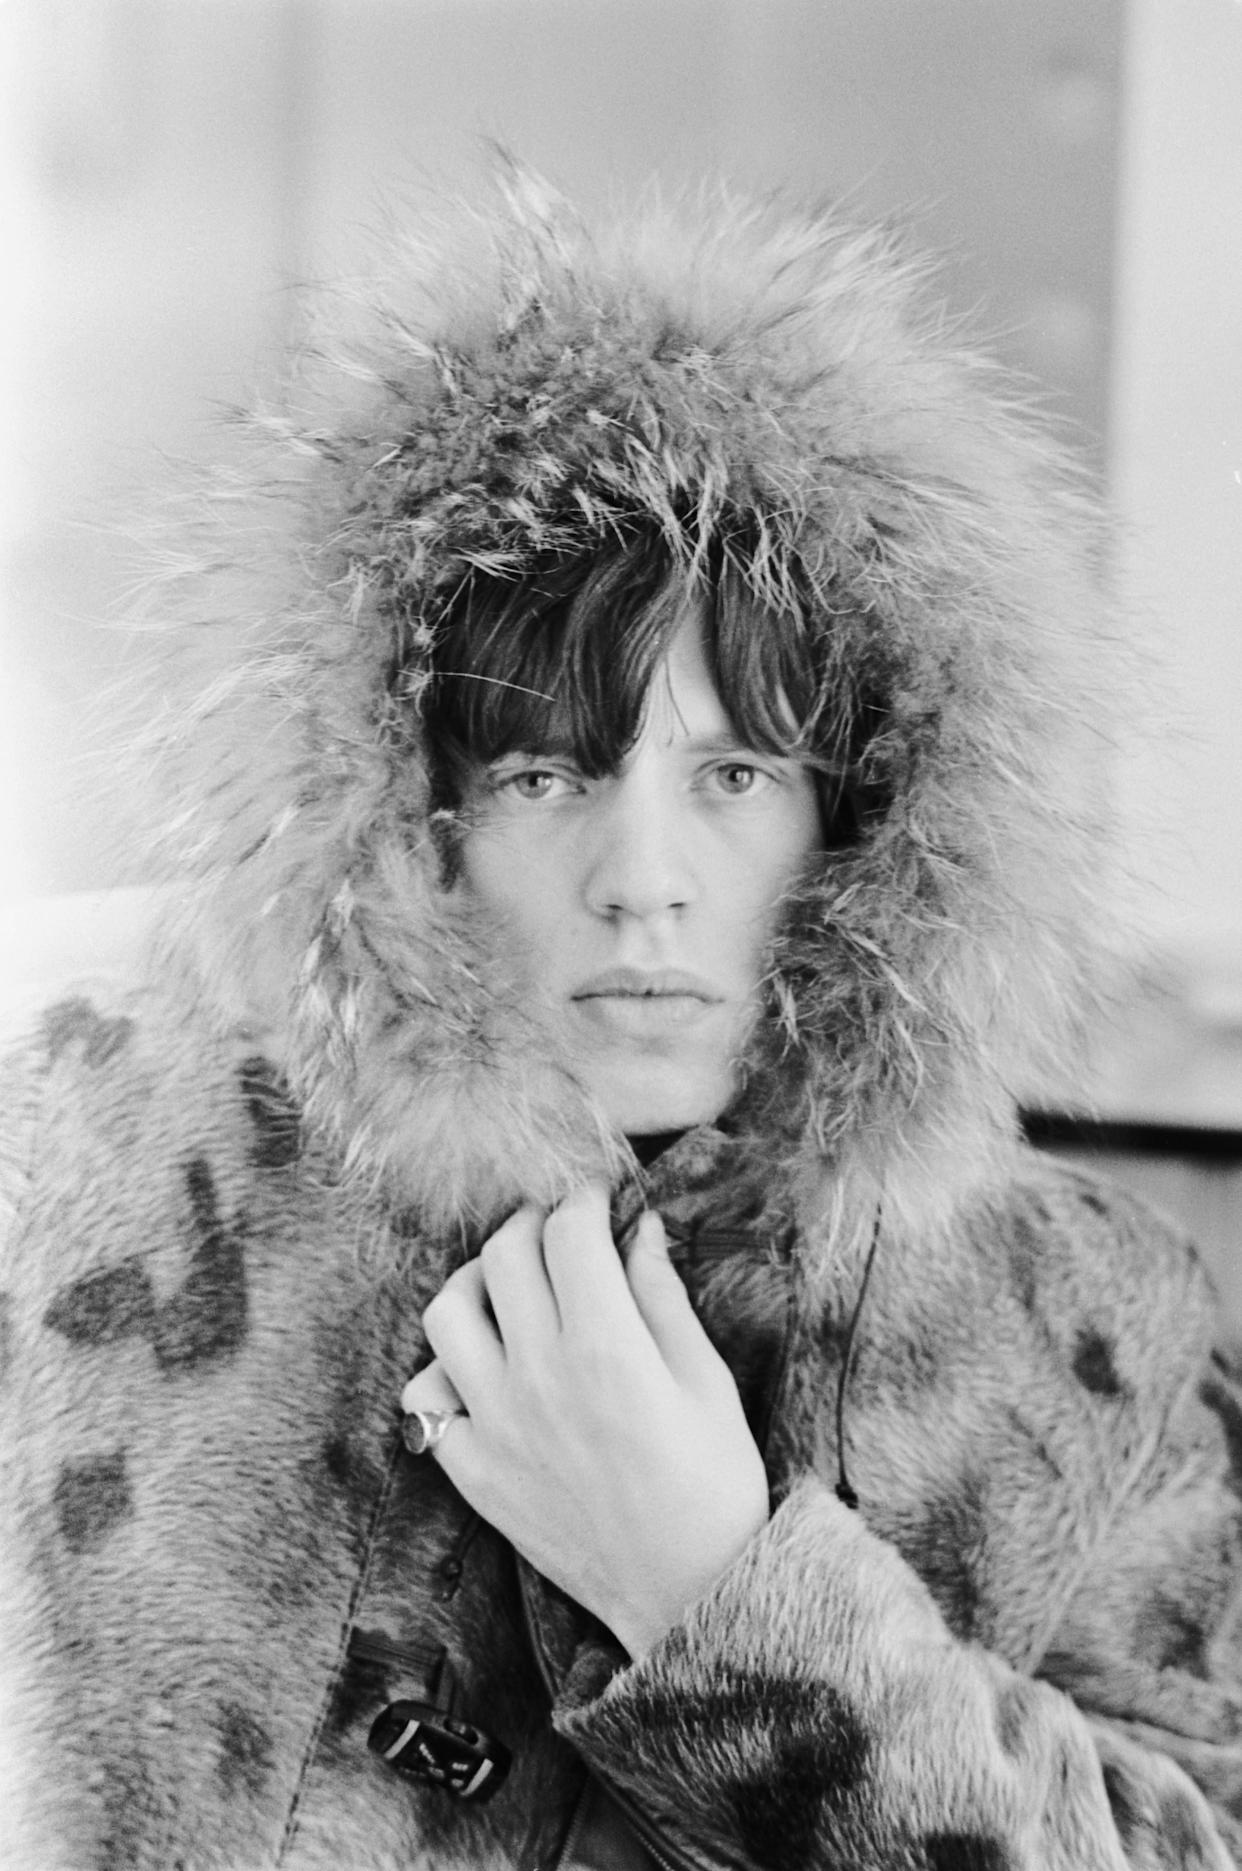 Mick Jagger, lead singer of the Rolling Stones, wearing a fur-lined parka, 1965. (Photo by Terry O'Neill/Hulton Archive/Getty Images)